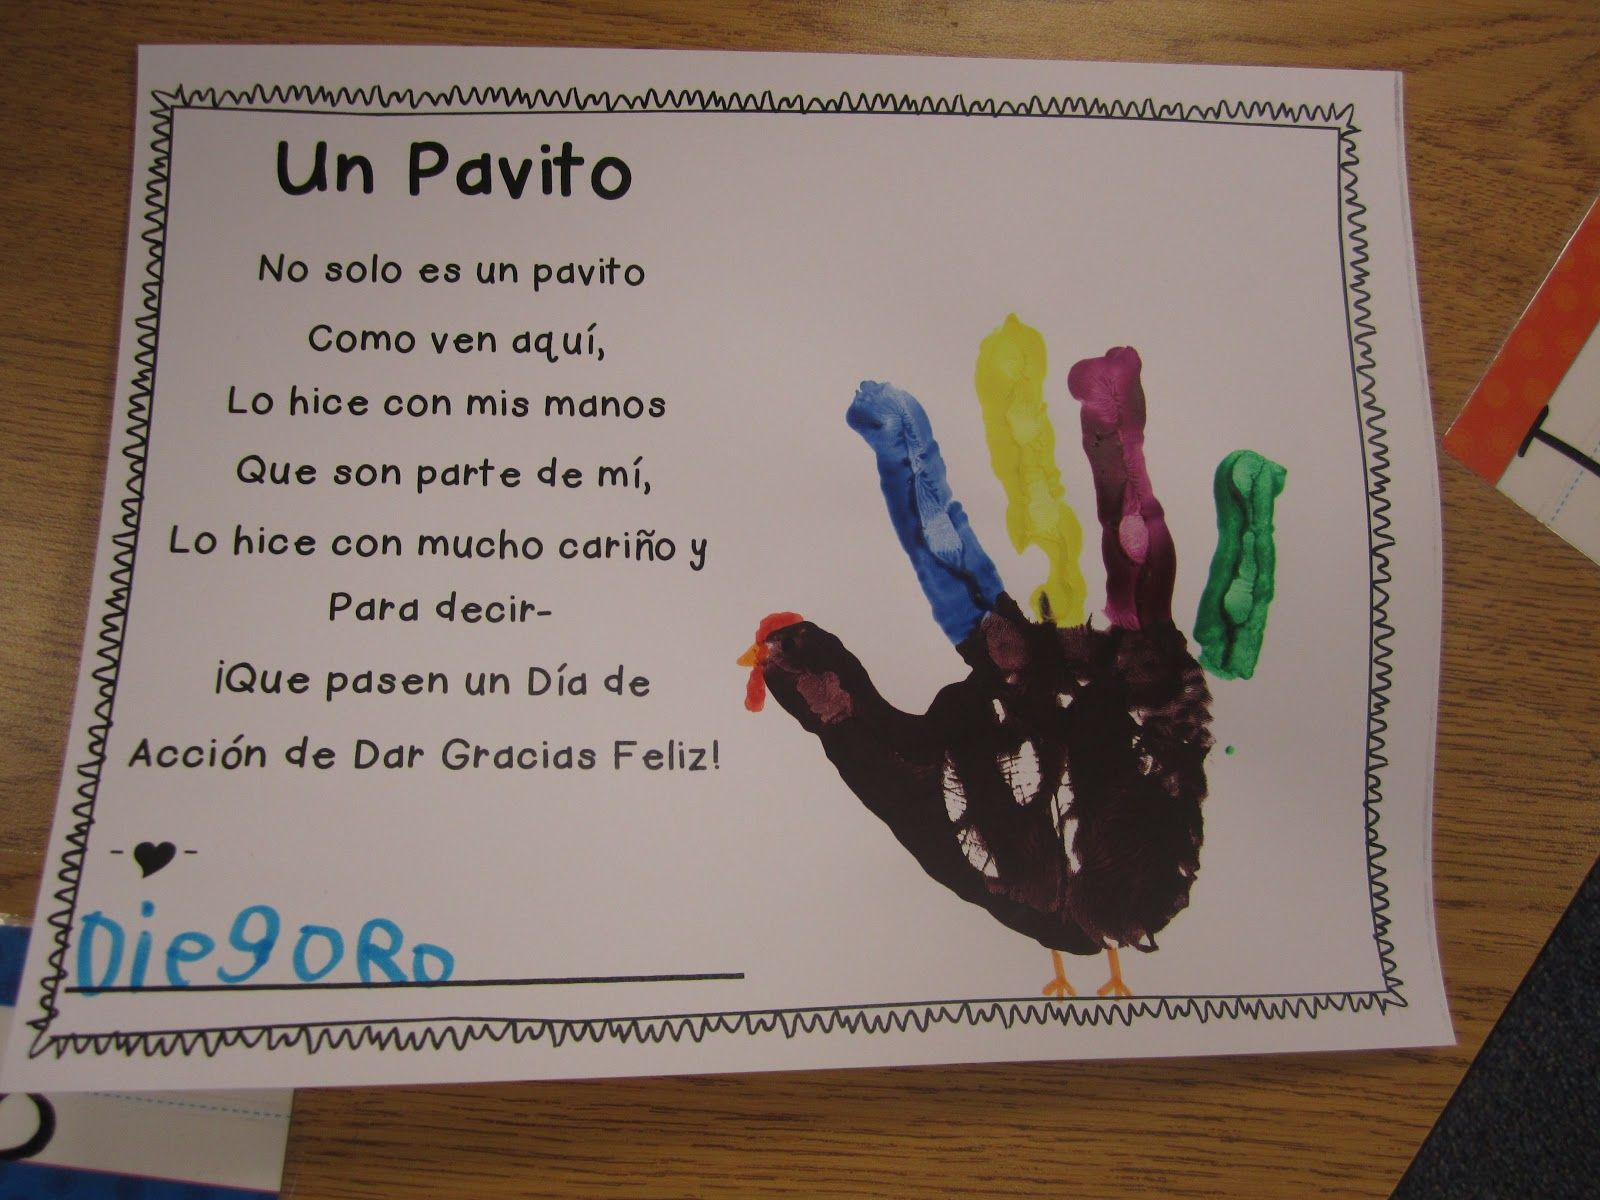 Best Kinder Dual Language Divas Thanksgiving Poems For Kids 2021 From kdldivas.blogspot.com